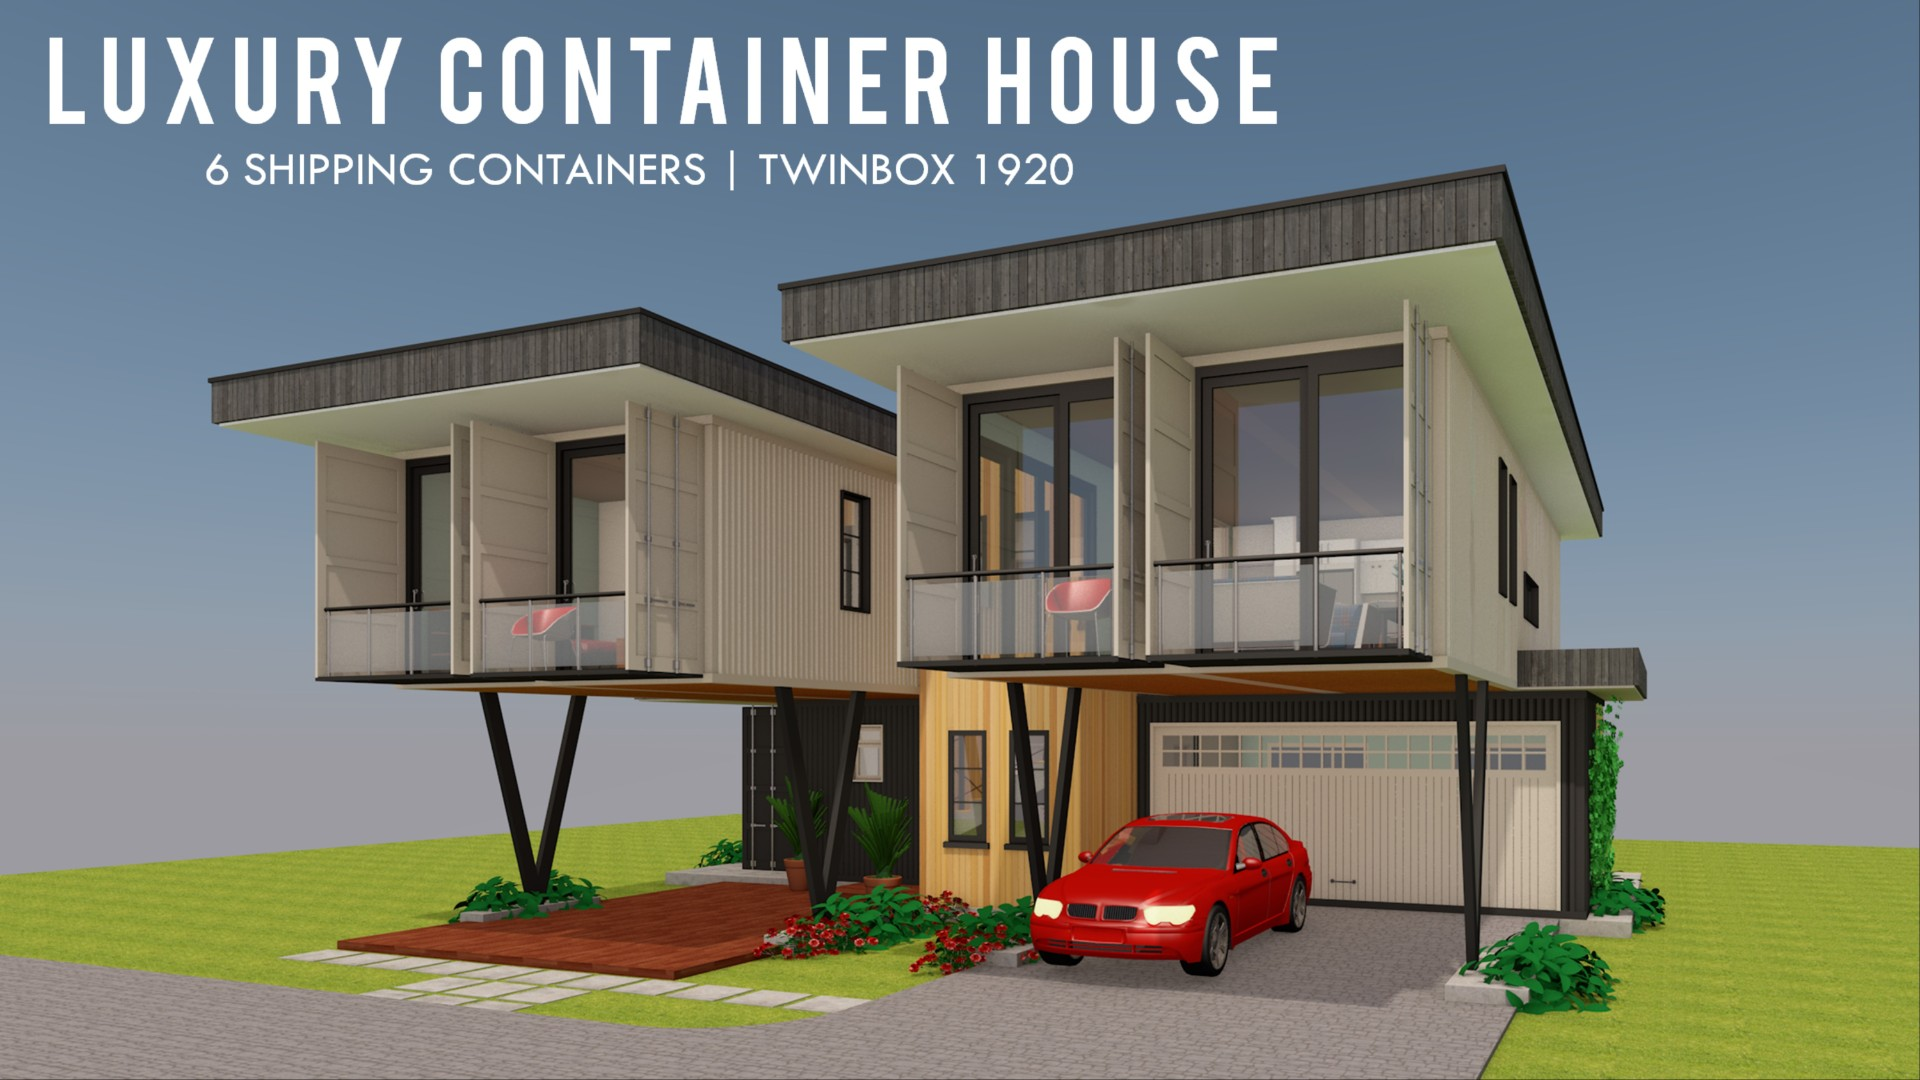 Modern Shipping Container Home twinbox 1920 | id. s25321920 | 5 beds | 3 baths | 1920+sft.|